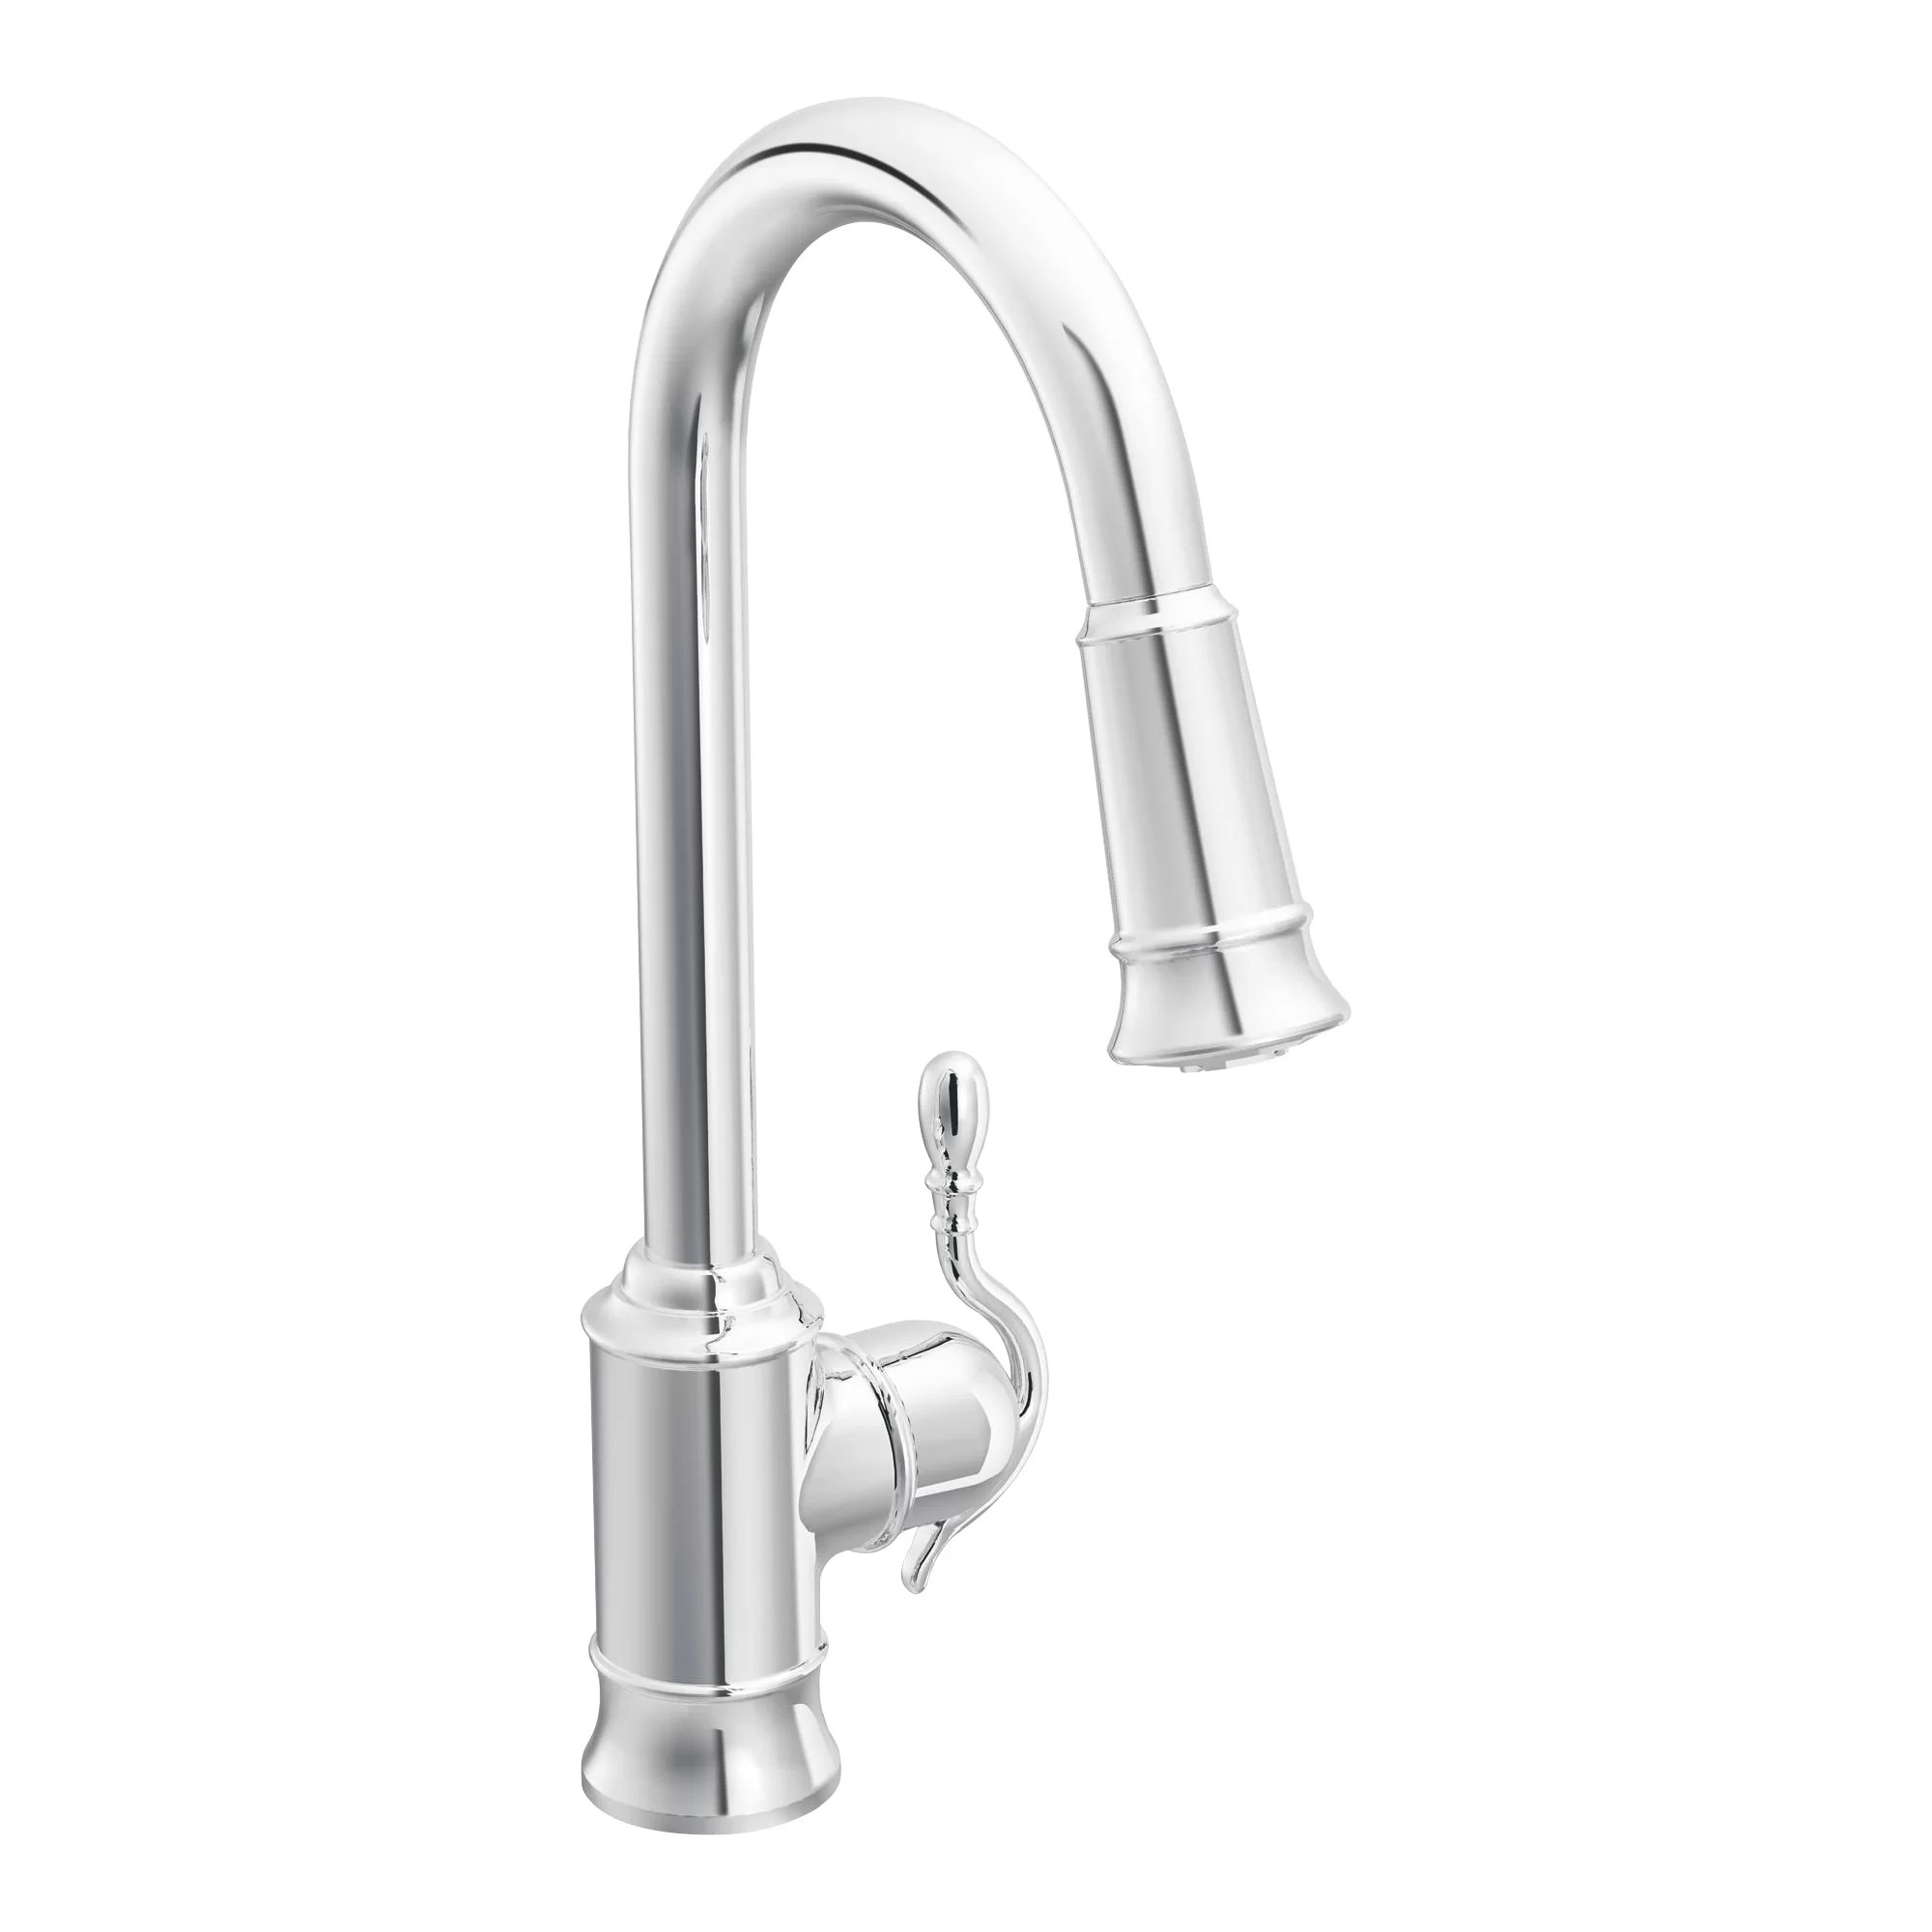 moen hands free kitchen faucet appliance store woodmere single handle hole